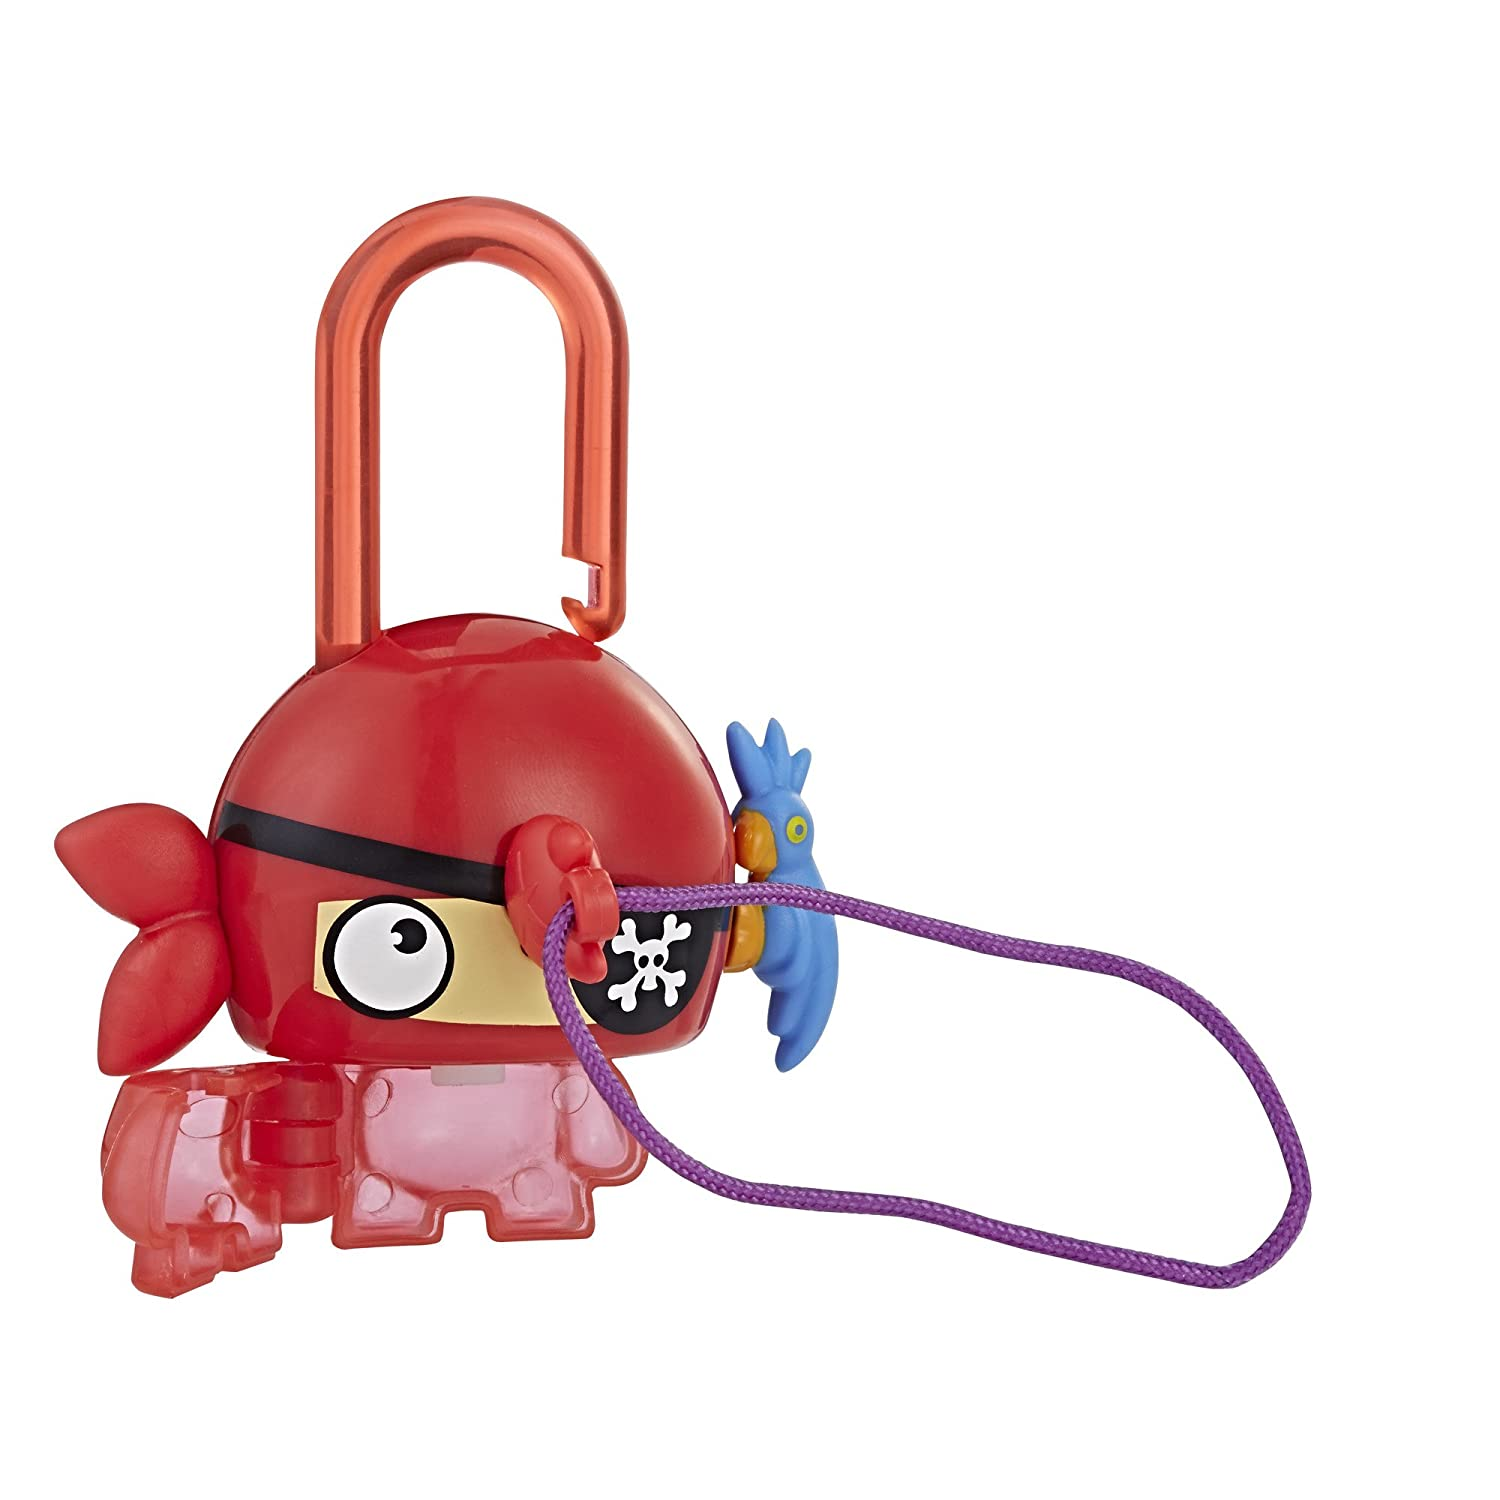 Product may vary Lock Stars Basic Assortment Red Pirate Series 1 Hasbro E3213AS00